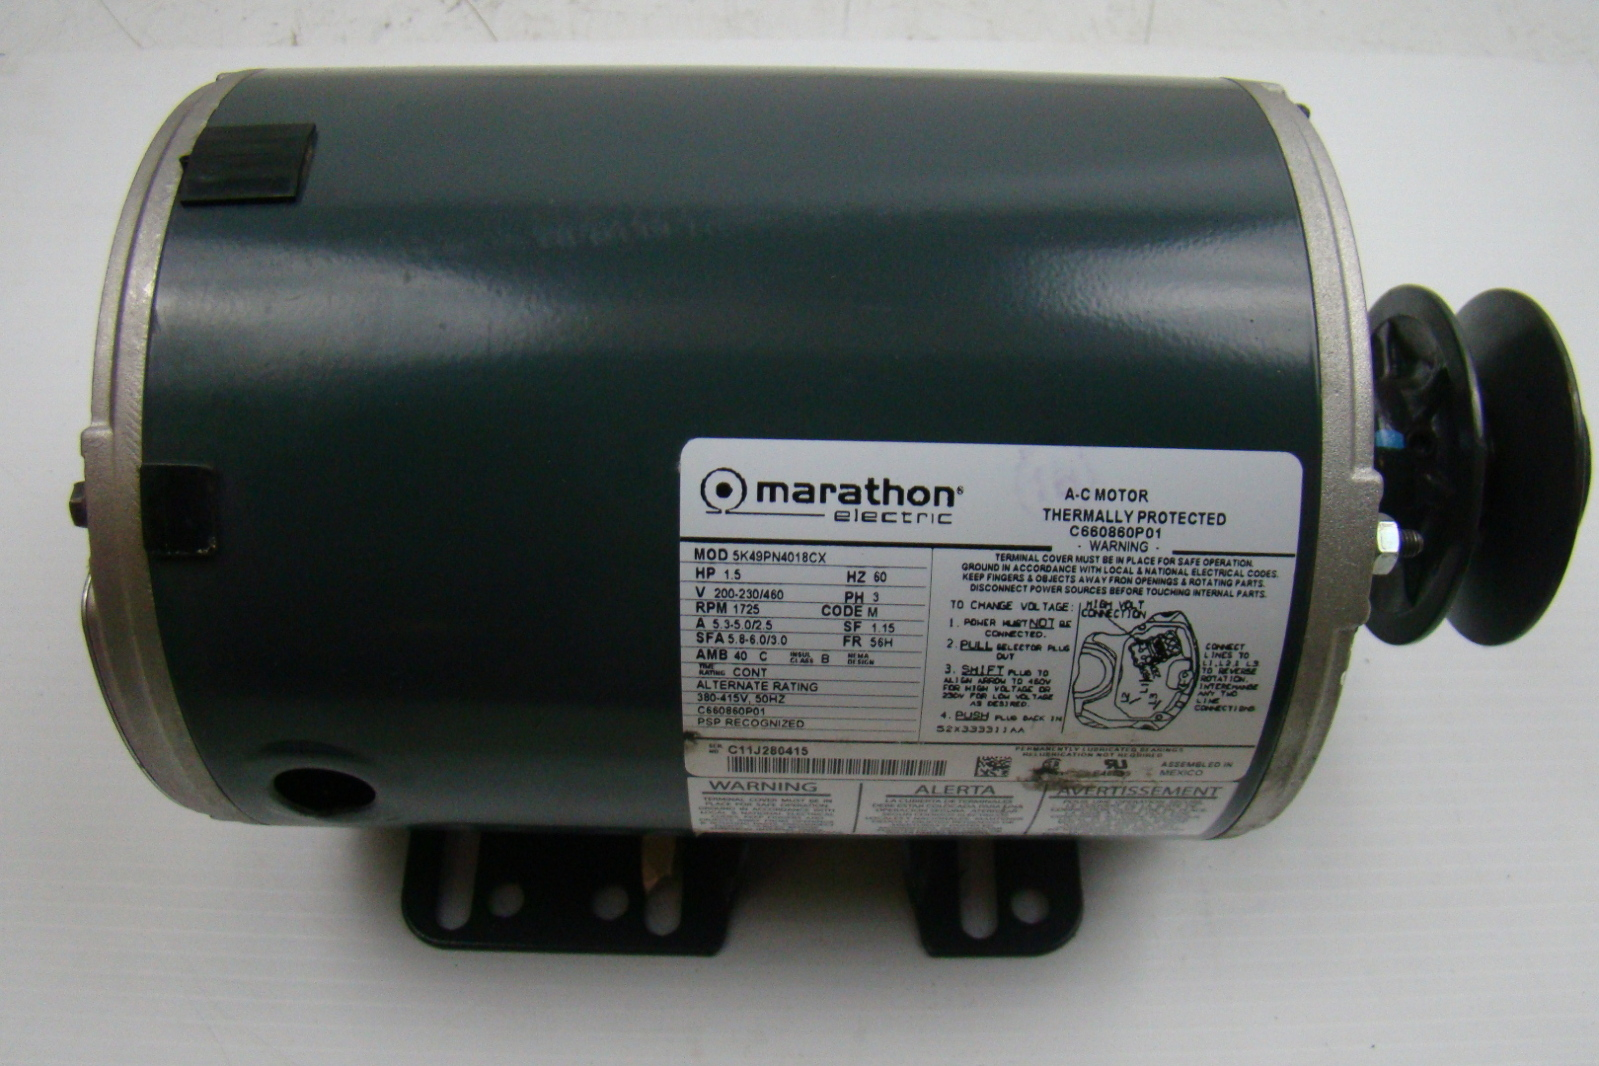 Marathon electric motor 1 1 2 hp 200 230 460v 5k49pn4018cx for 1 2 hp ac motor